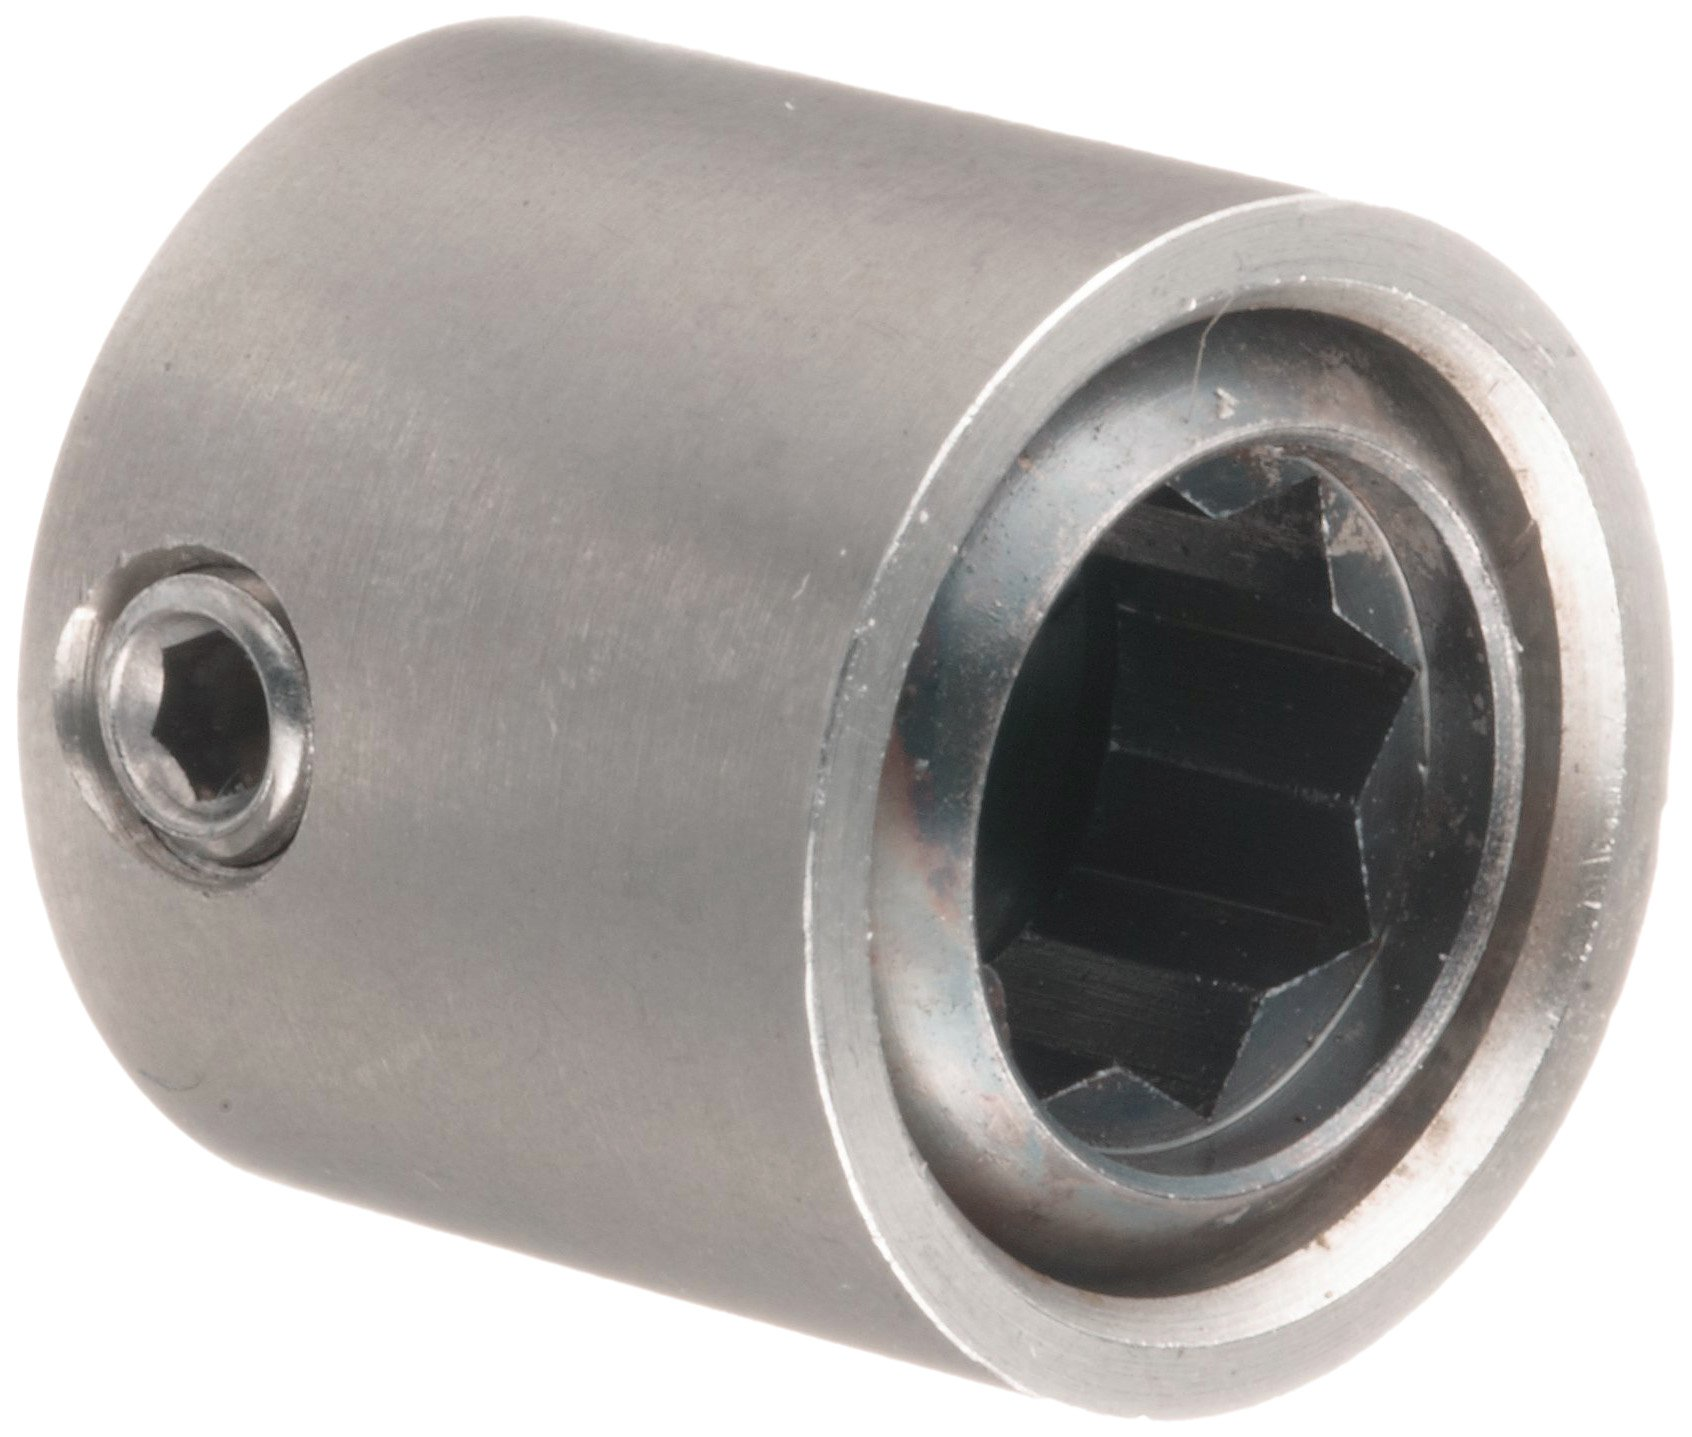 PRO Scientific 07-00150 Rotor Shaft Collar Assembly for All PRO Quick Connect Generators